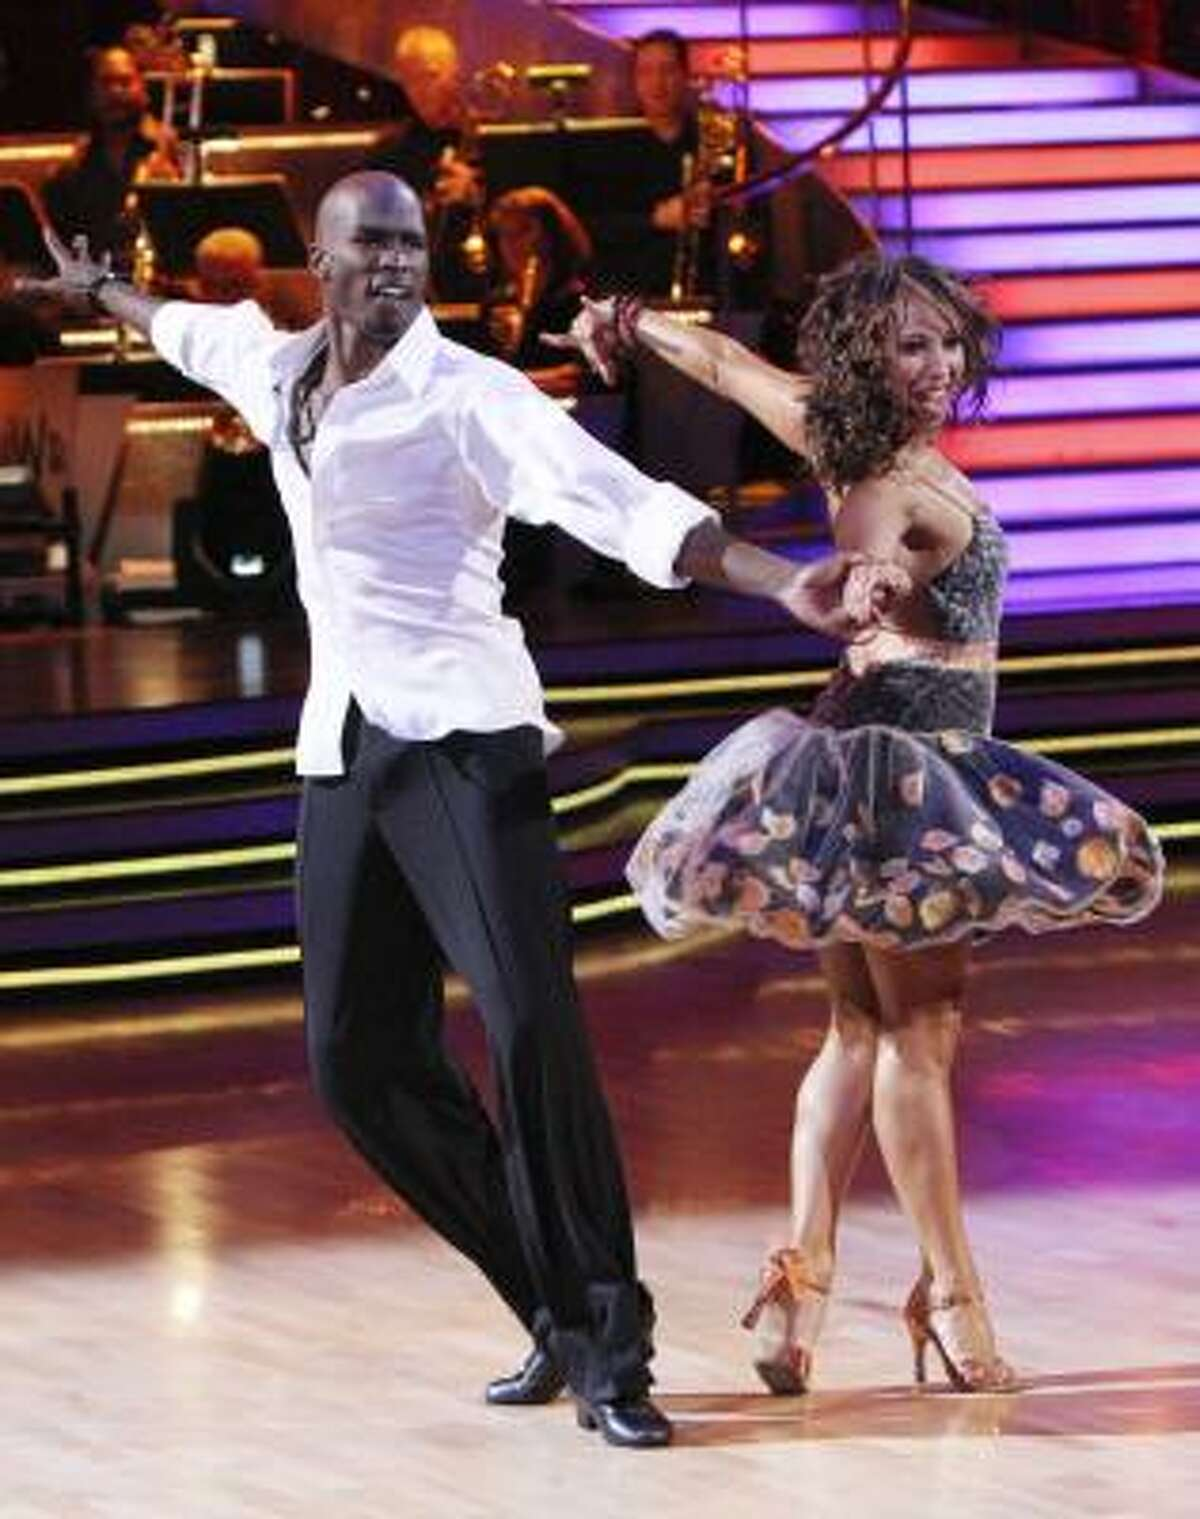 """In this publicity image released by ABC, NFL player Chad Ochocinco, left, and his partner Cheryl Burke perform on the celebrity dance competition series, """"Dancing With the Stars,"""" Monday, March 22, 2010 in Los Angeles."""